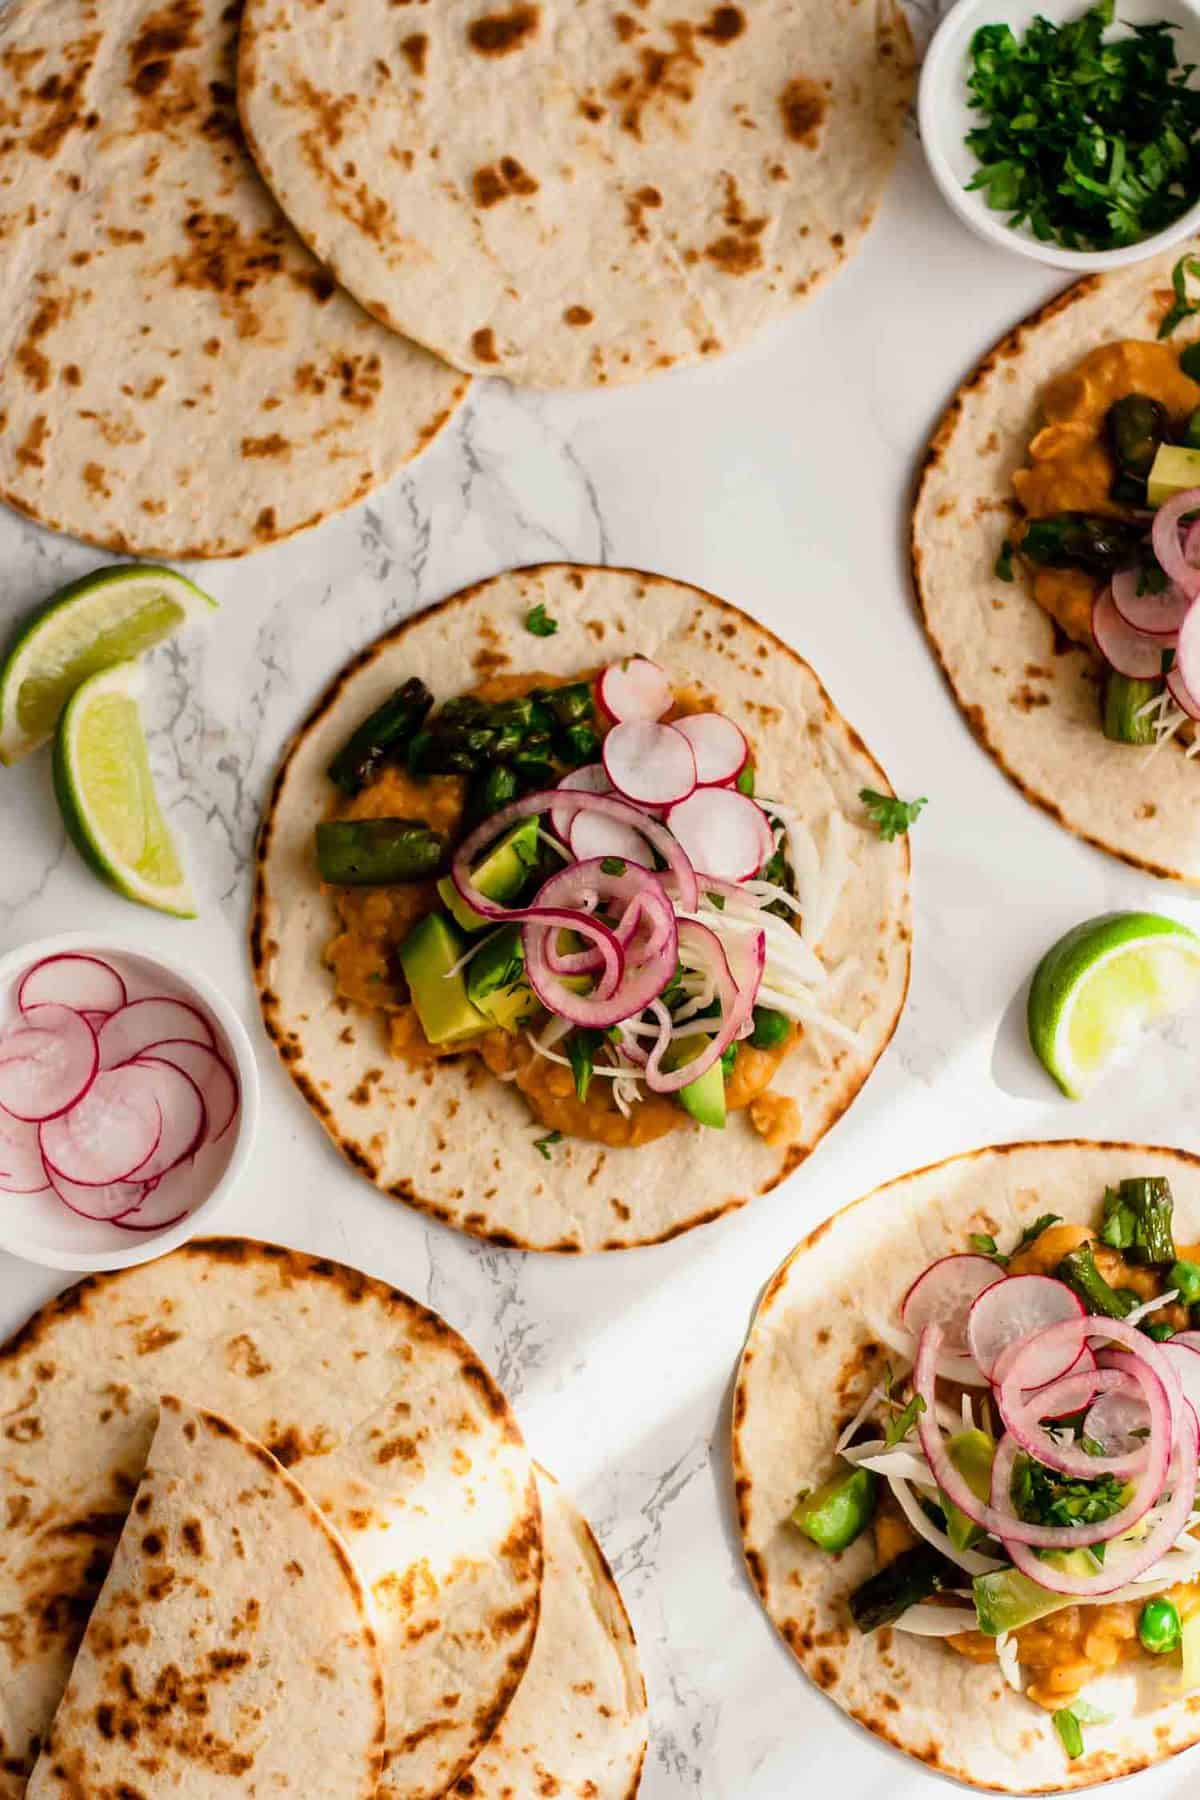 Vegan Tacos with Refried Cannellini Beans and Asparagus